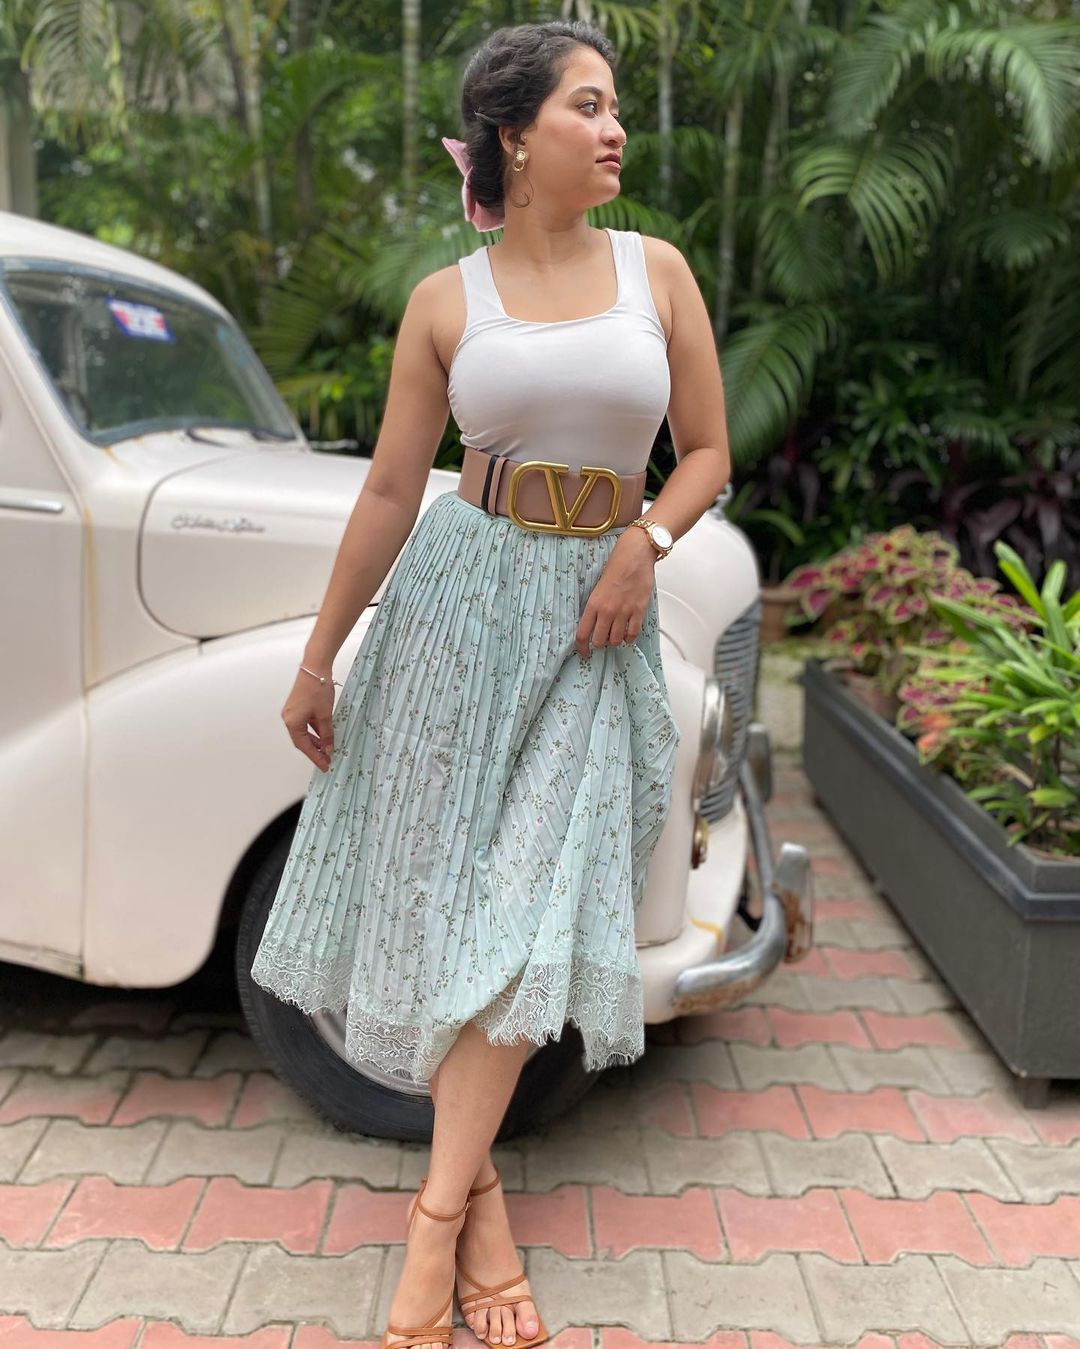 Shweta Sharma in White Outfit- Instagram Photos Images Wallpapers